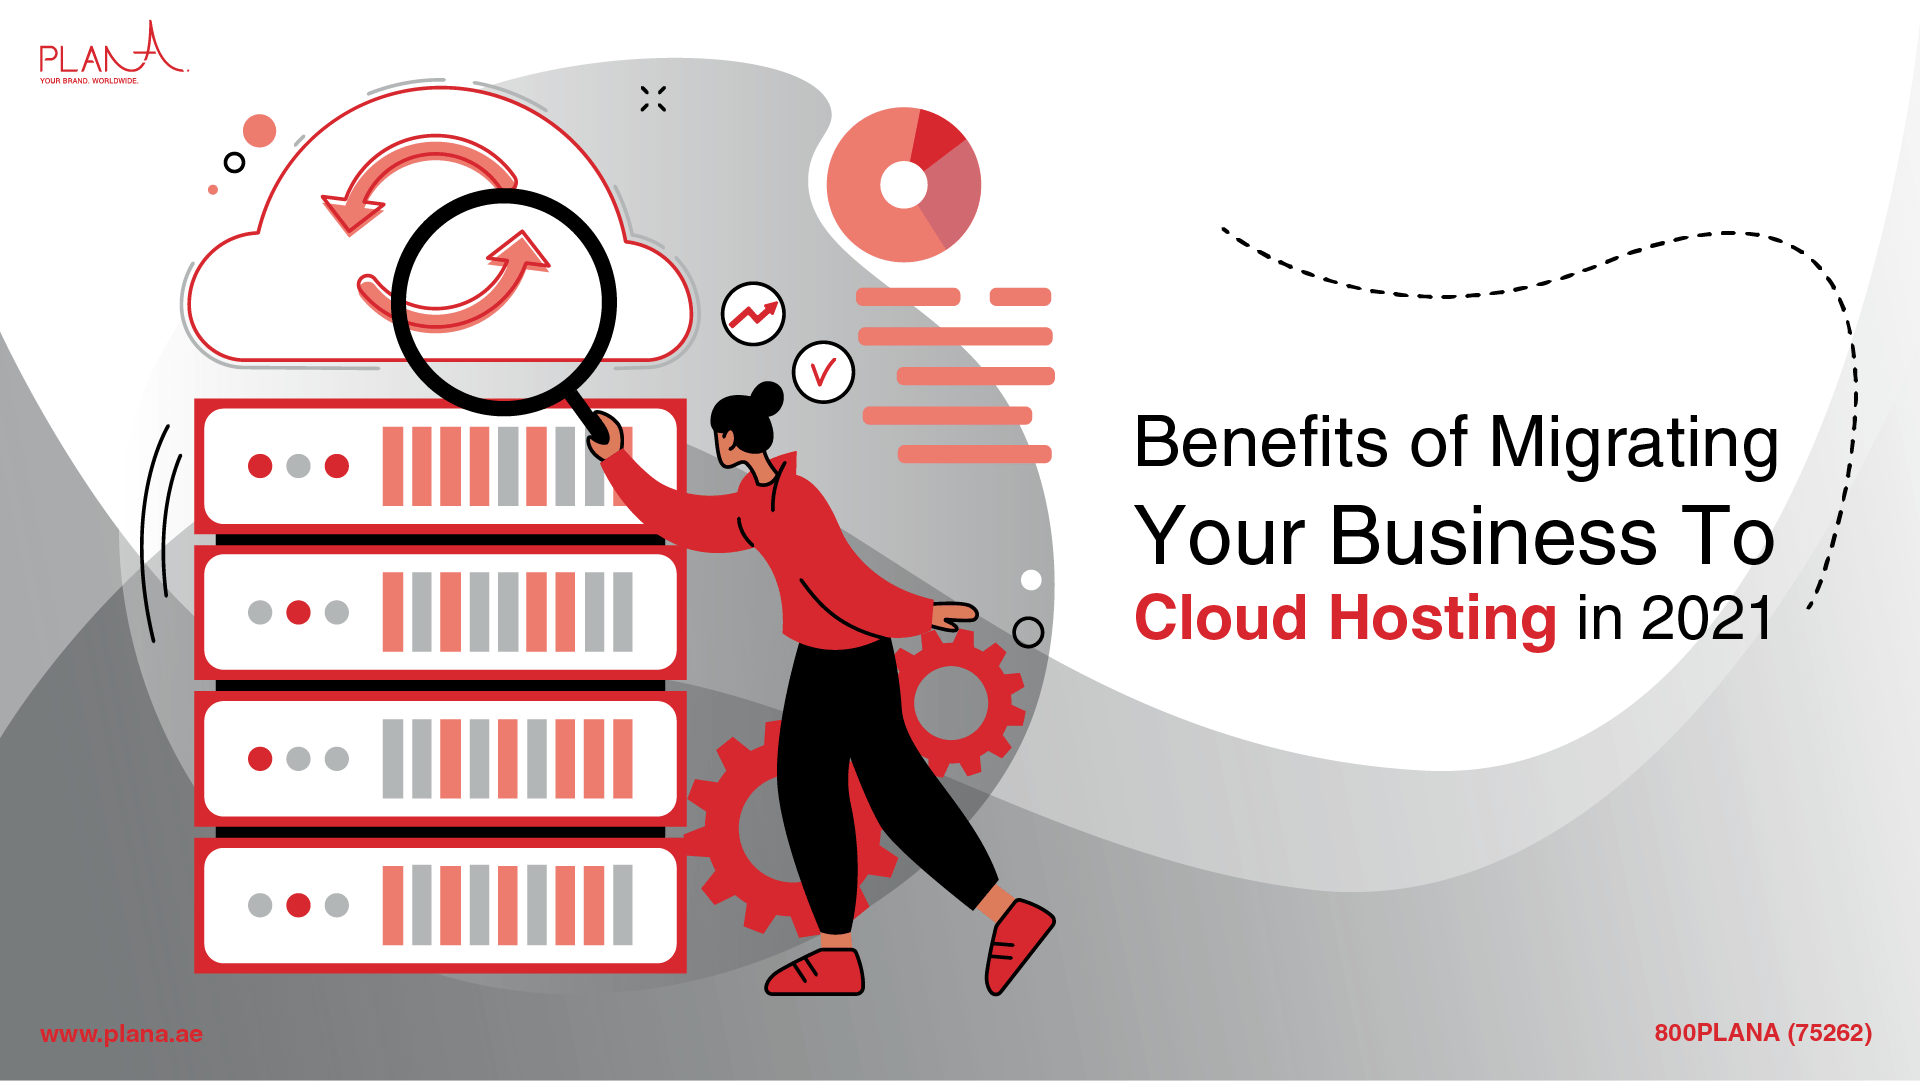 Benefits of Migrating Your Business To Cloud Hosting in 2021